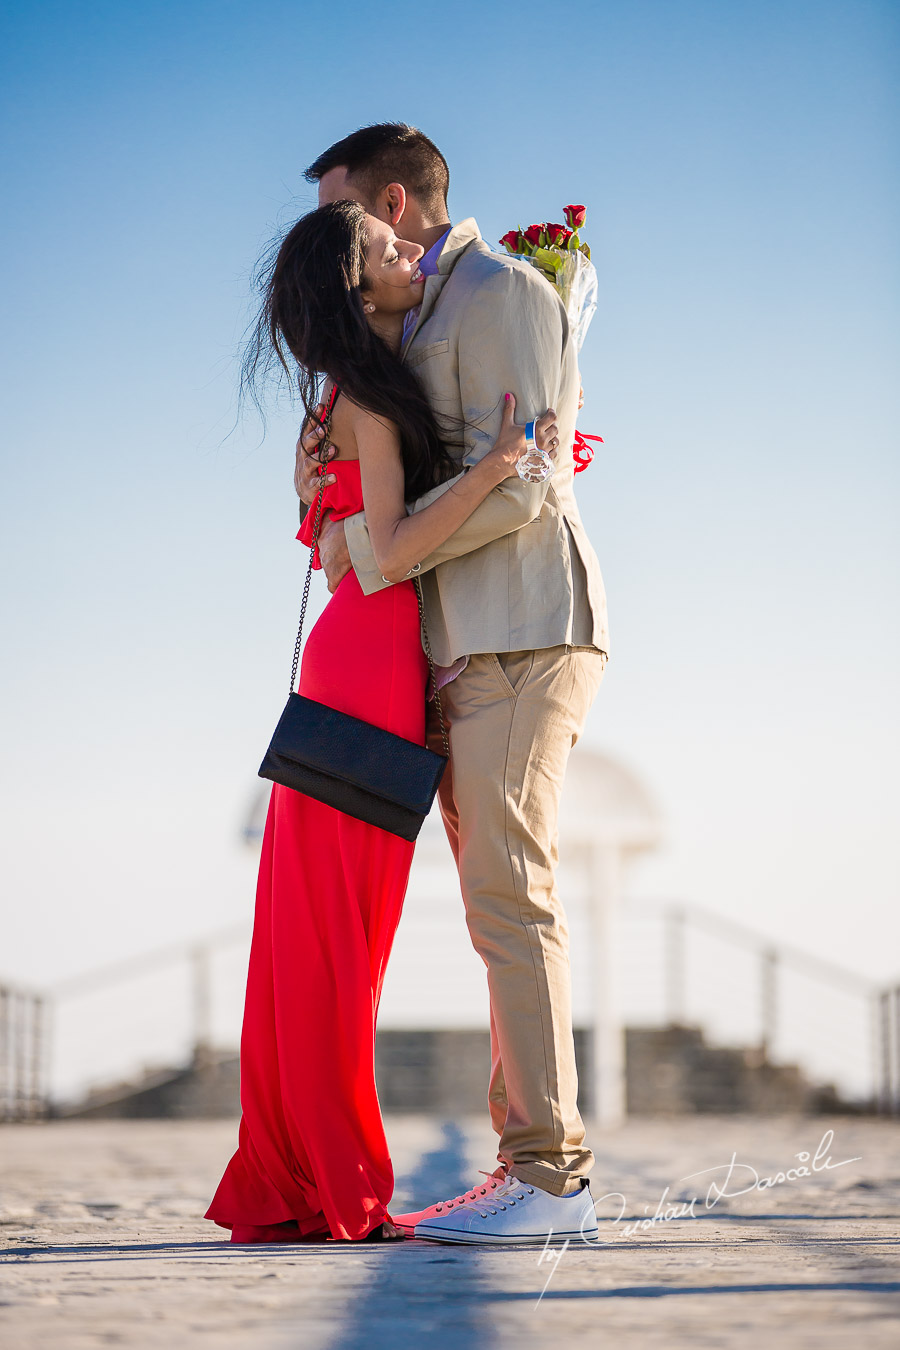 Beach Proposal Photo Session - 20